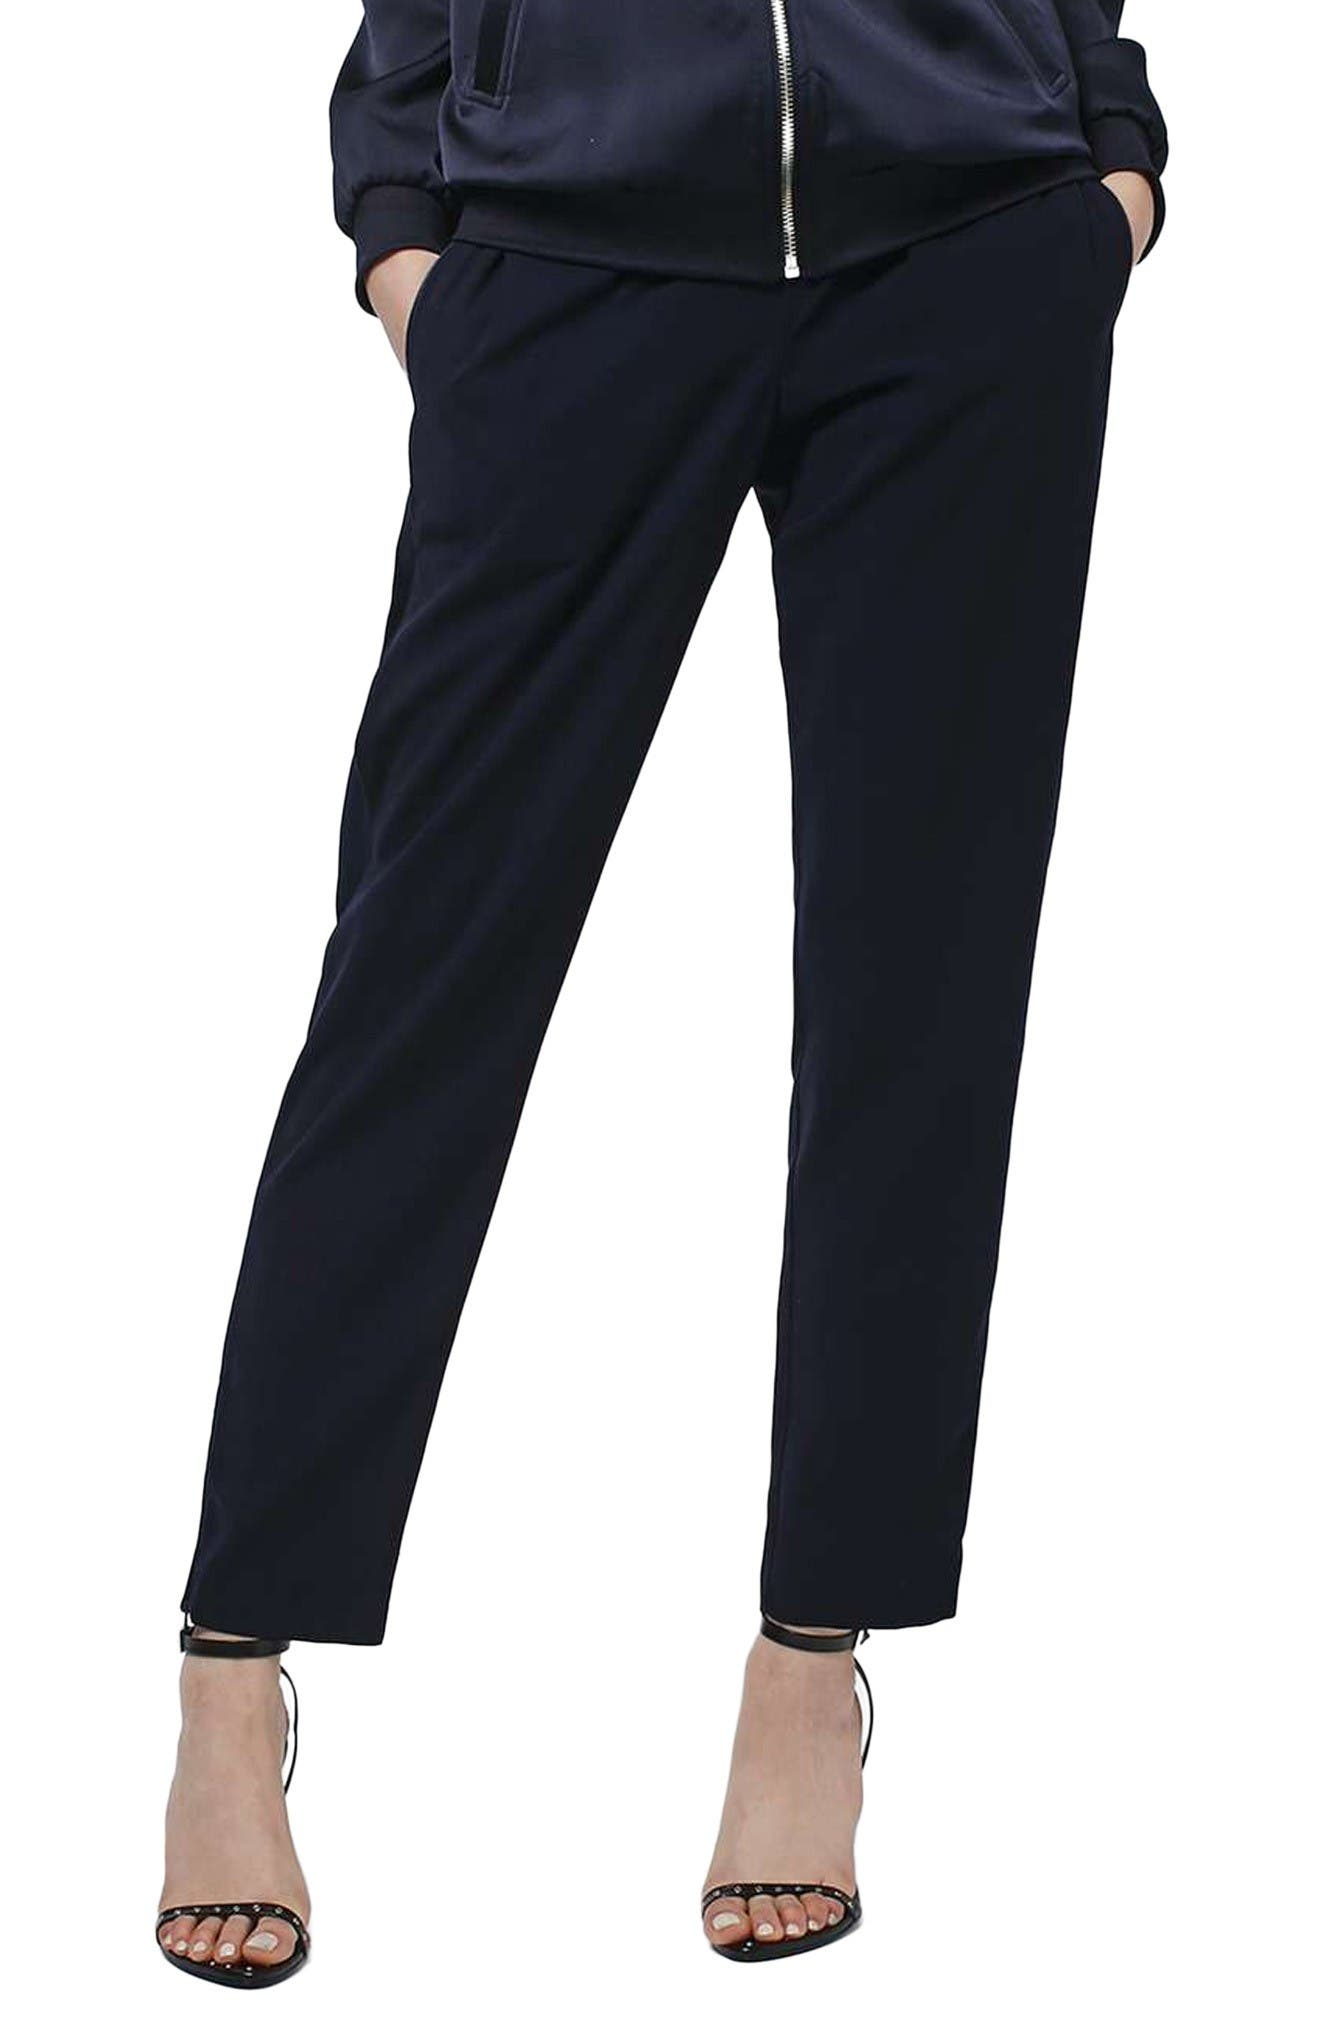 Alternate Image 1 Selected - Topshop Contrast Piped Ankle Zip Jogger Pants